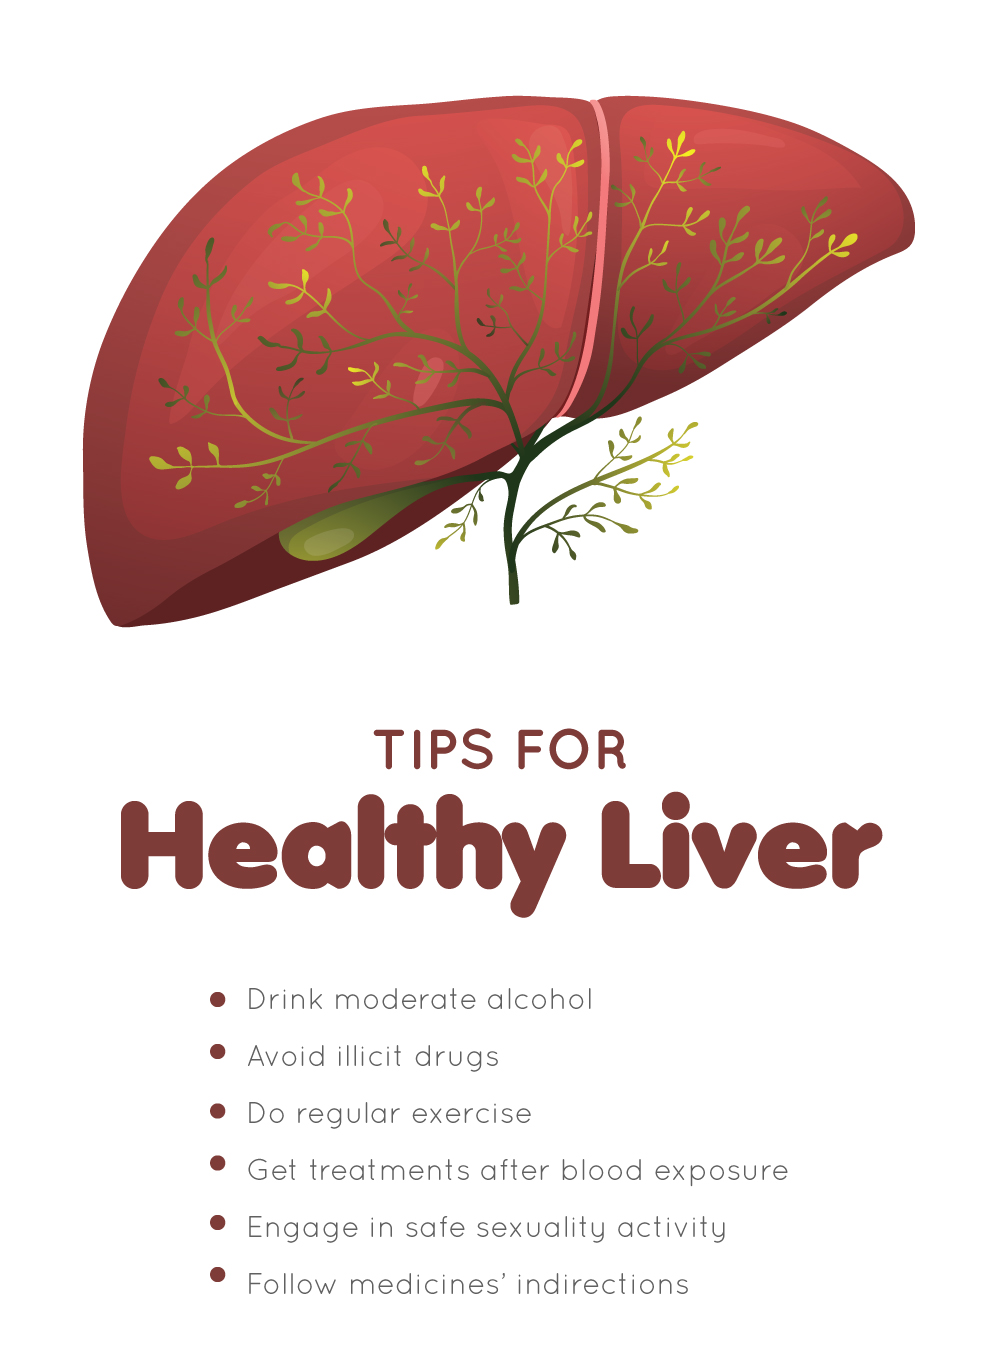 Tips for healthy Liver